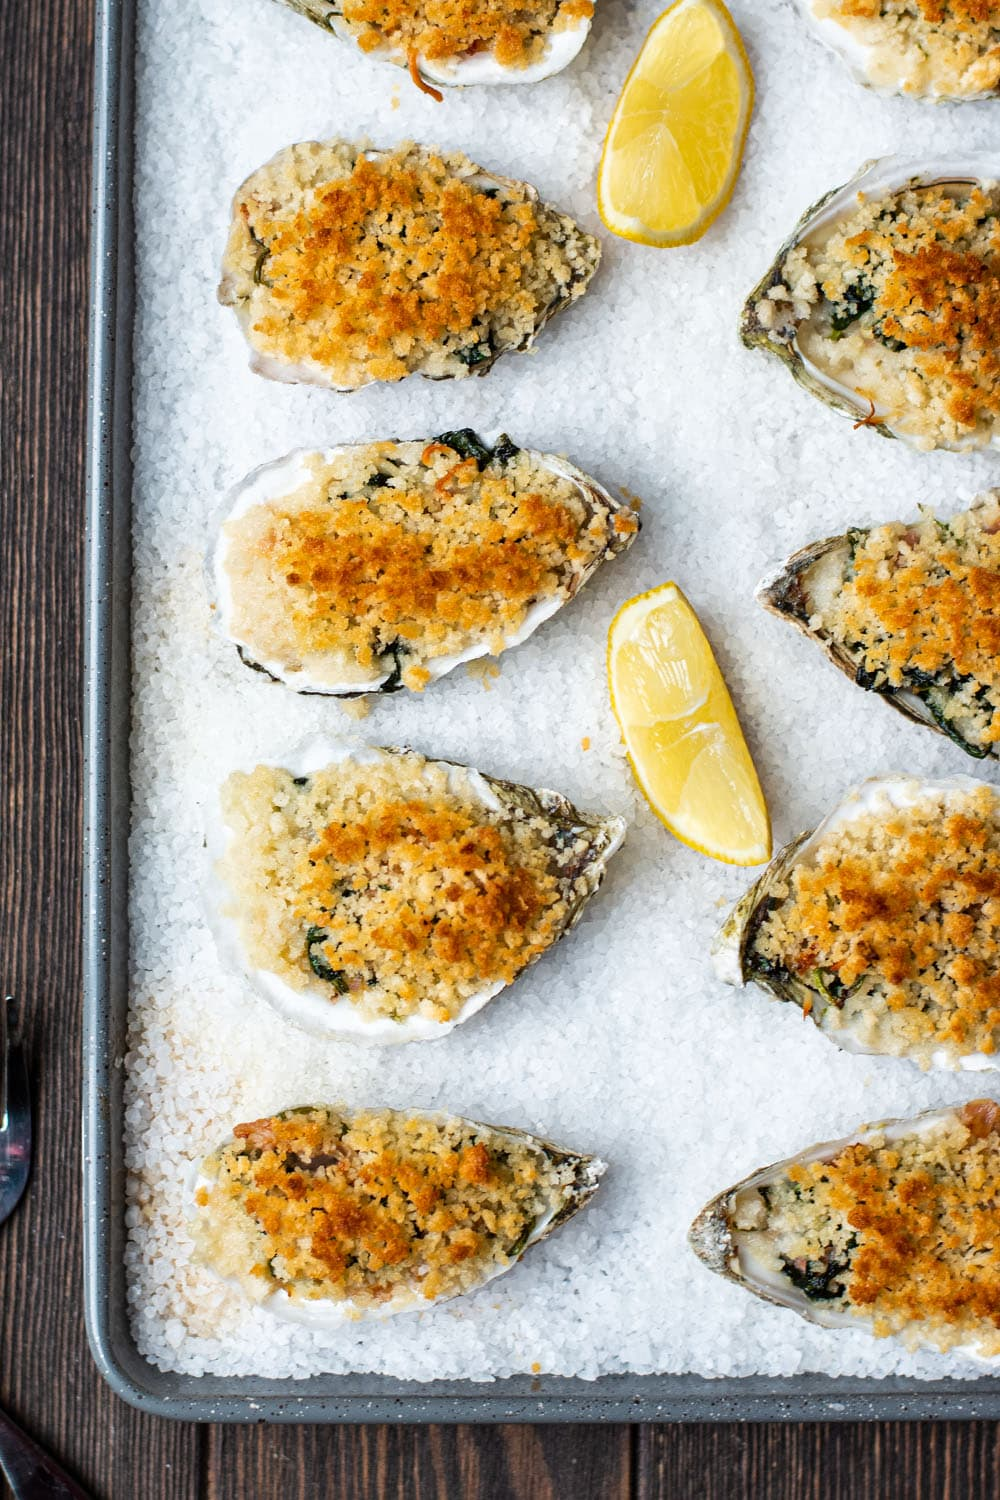 Baked Oysters Recipe